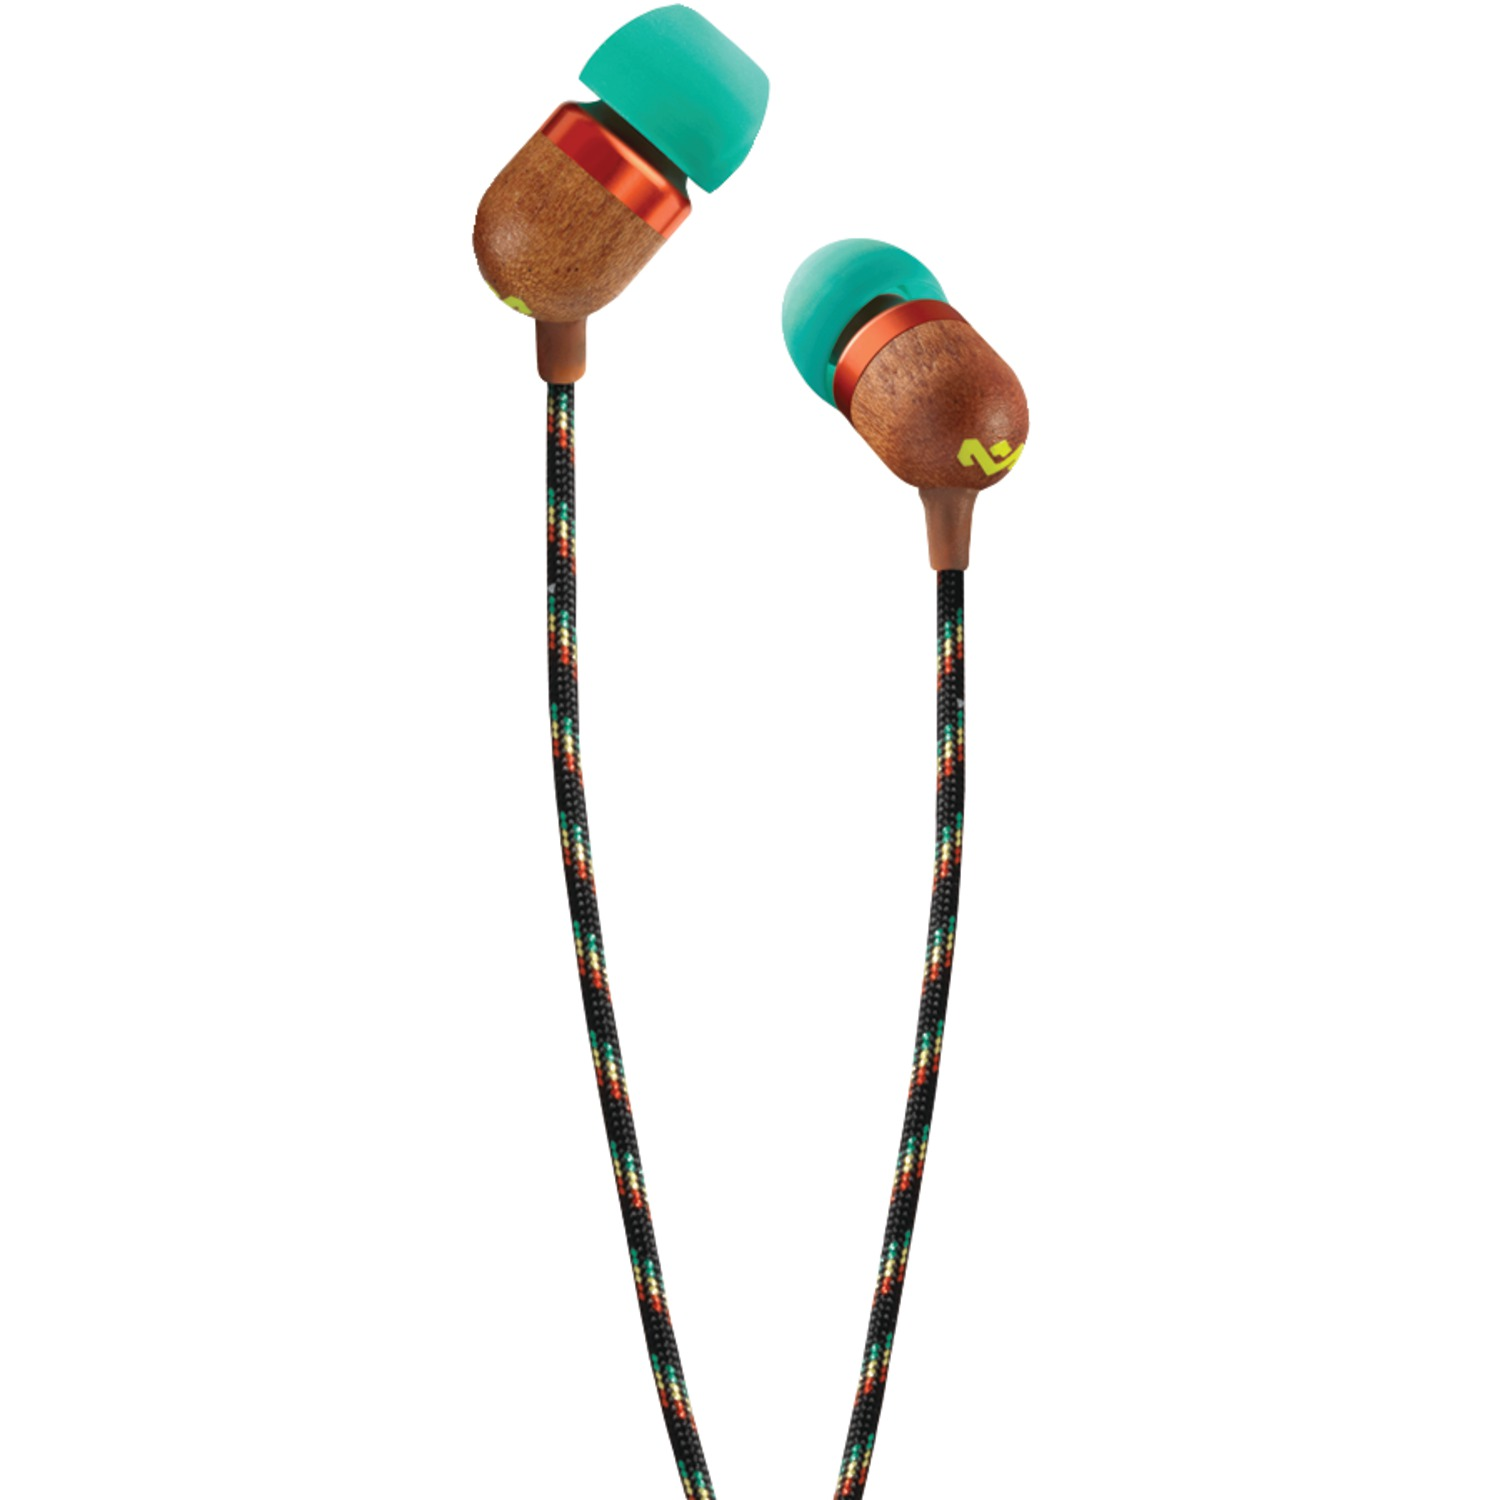 HOUSE OF MARLEY EM-JE000-RA Smile Jamaica(TM) In-Ear Earbuds (Rasta)